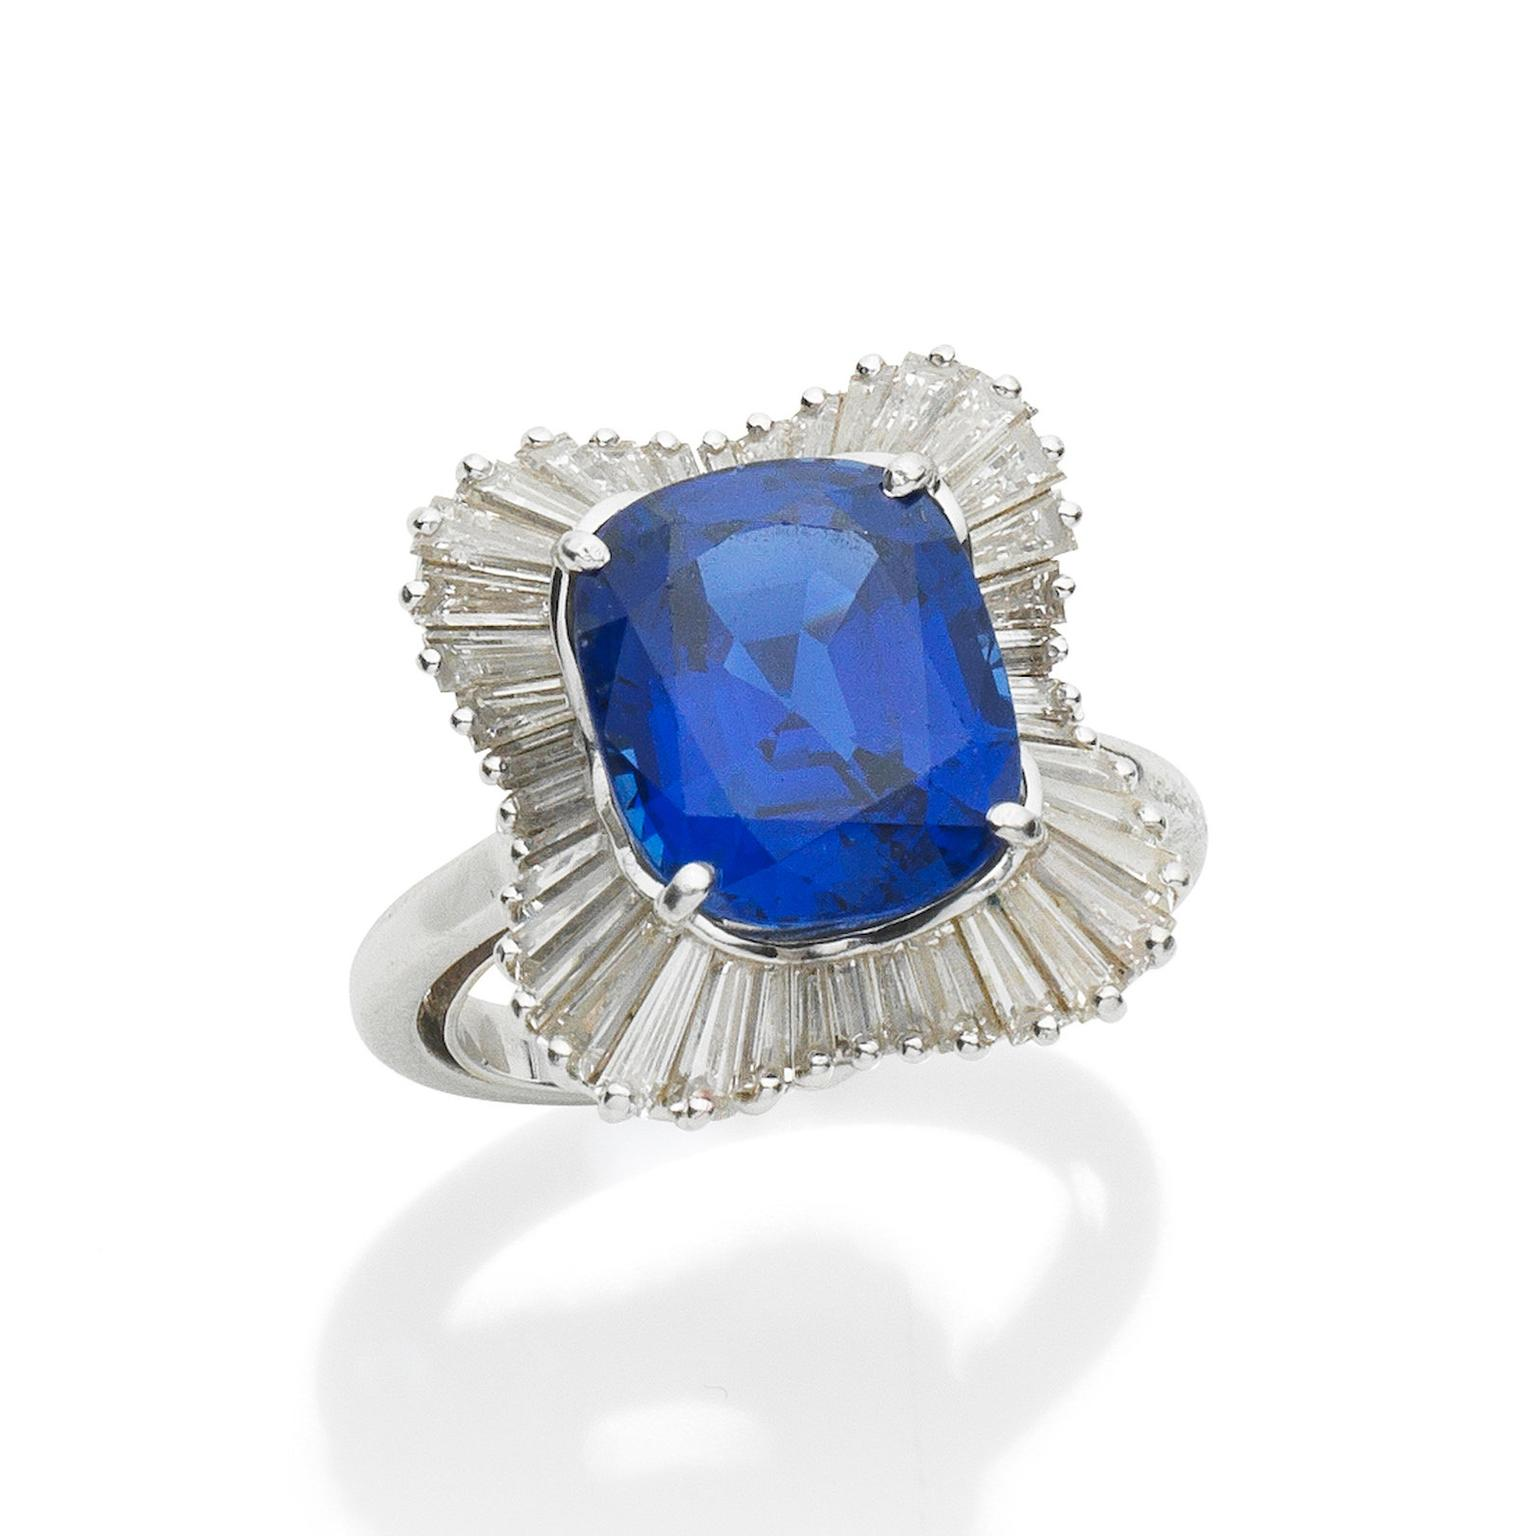 Sapphire and diamond ring auctionned by Bonhams Lot 87